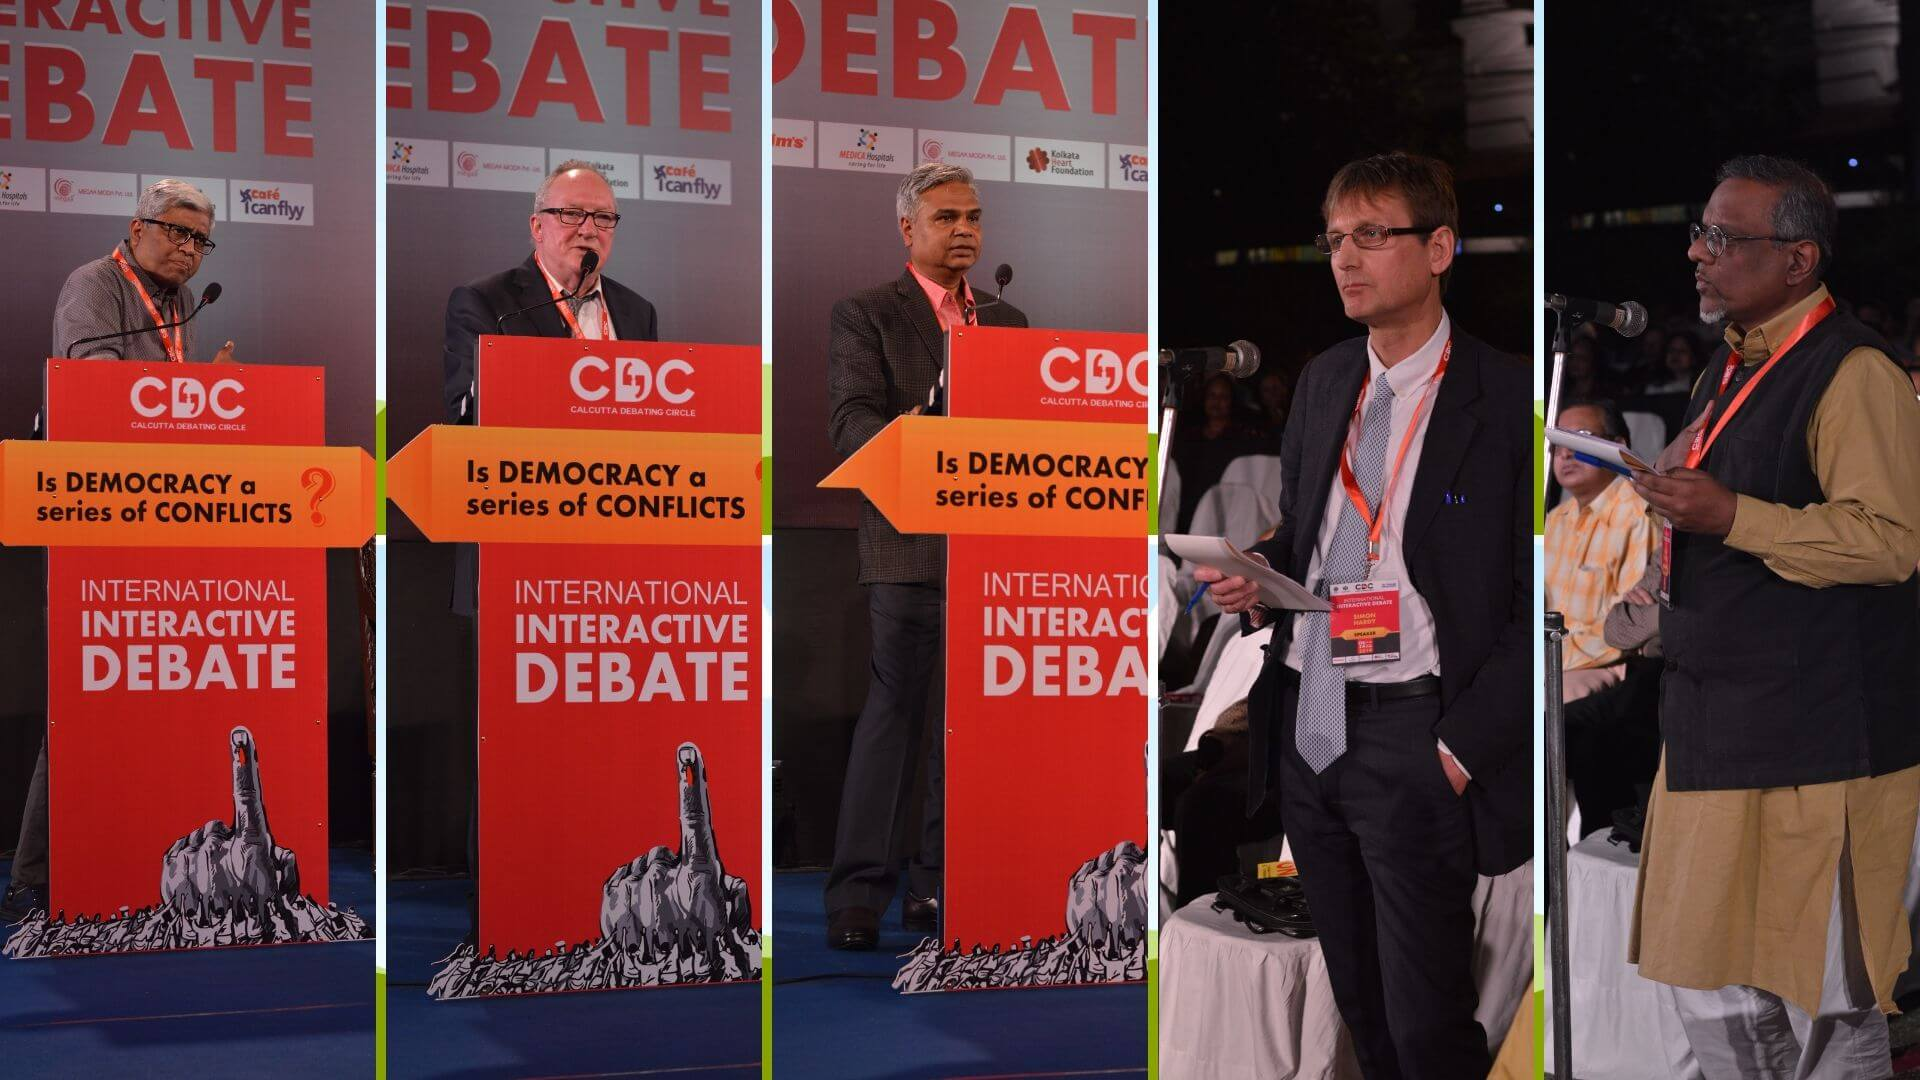 International Interactive Debate